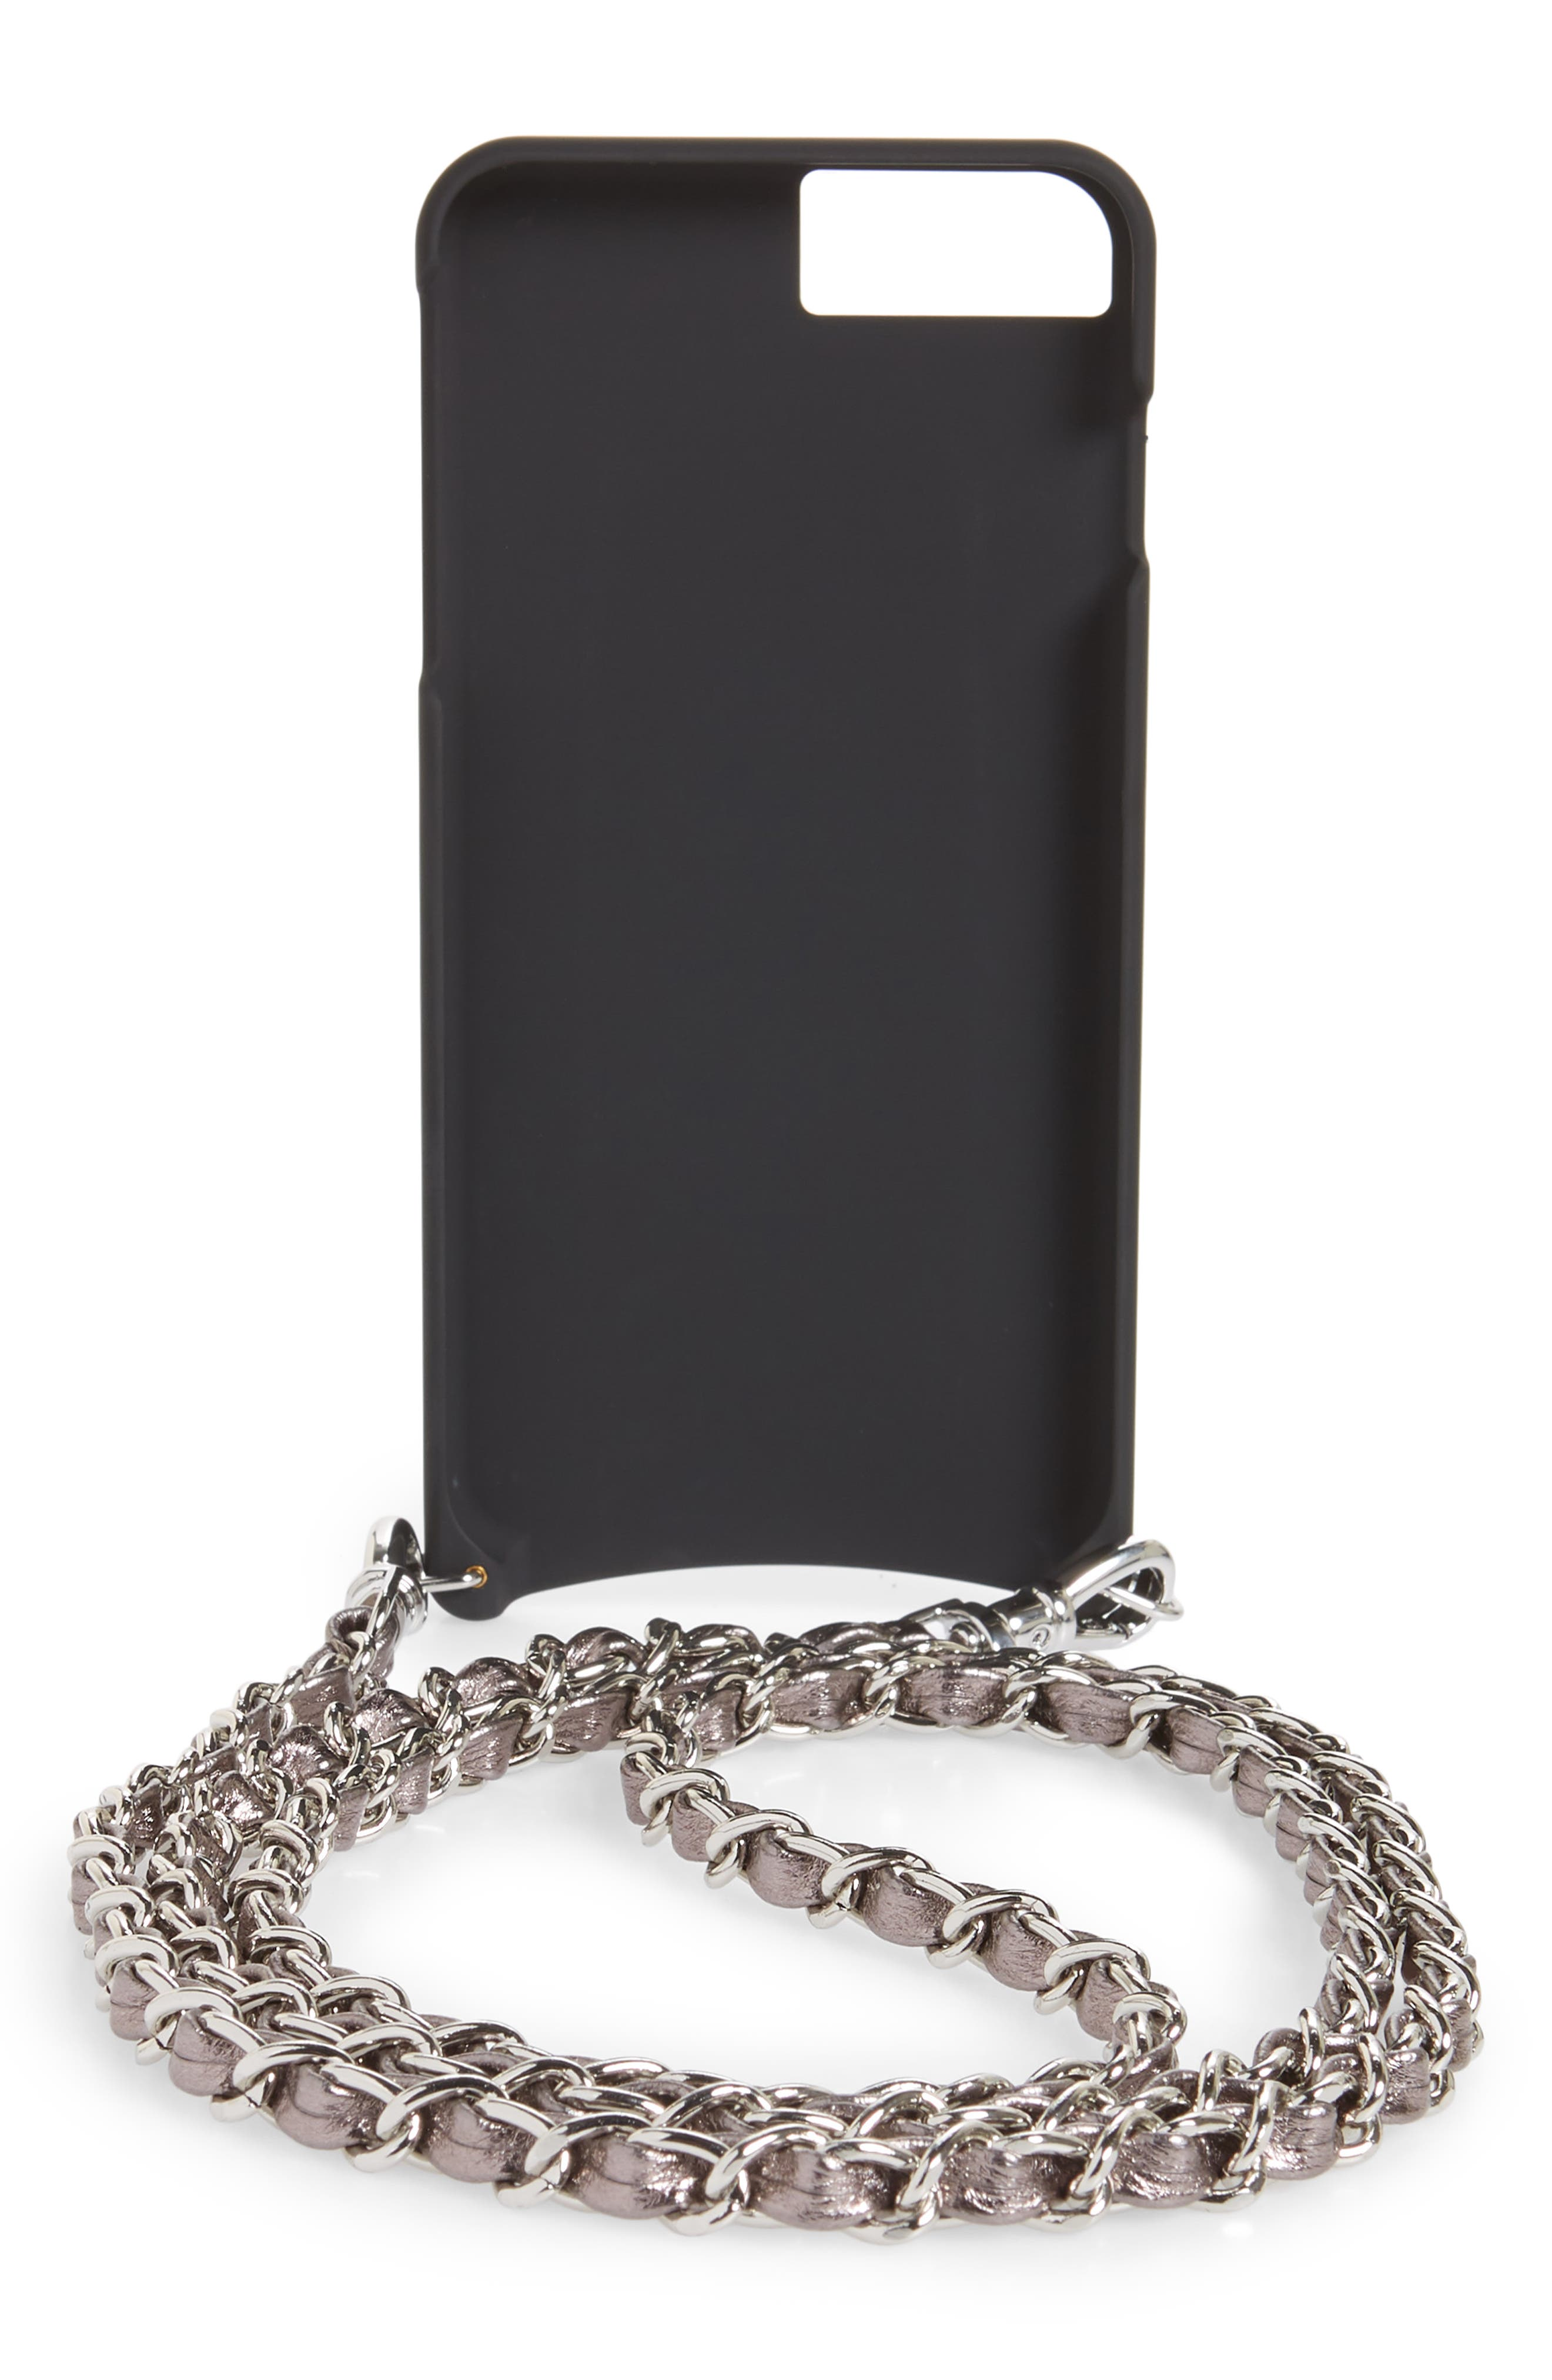 Lucy Faux Leather iPhone 7/8 & 7/8 Plus Crossbody Case,                             Alternate thumbnail 3, color,                             METALLIC ASH/ SILVER